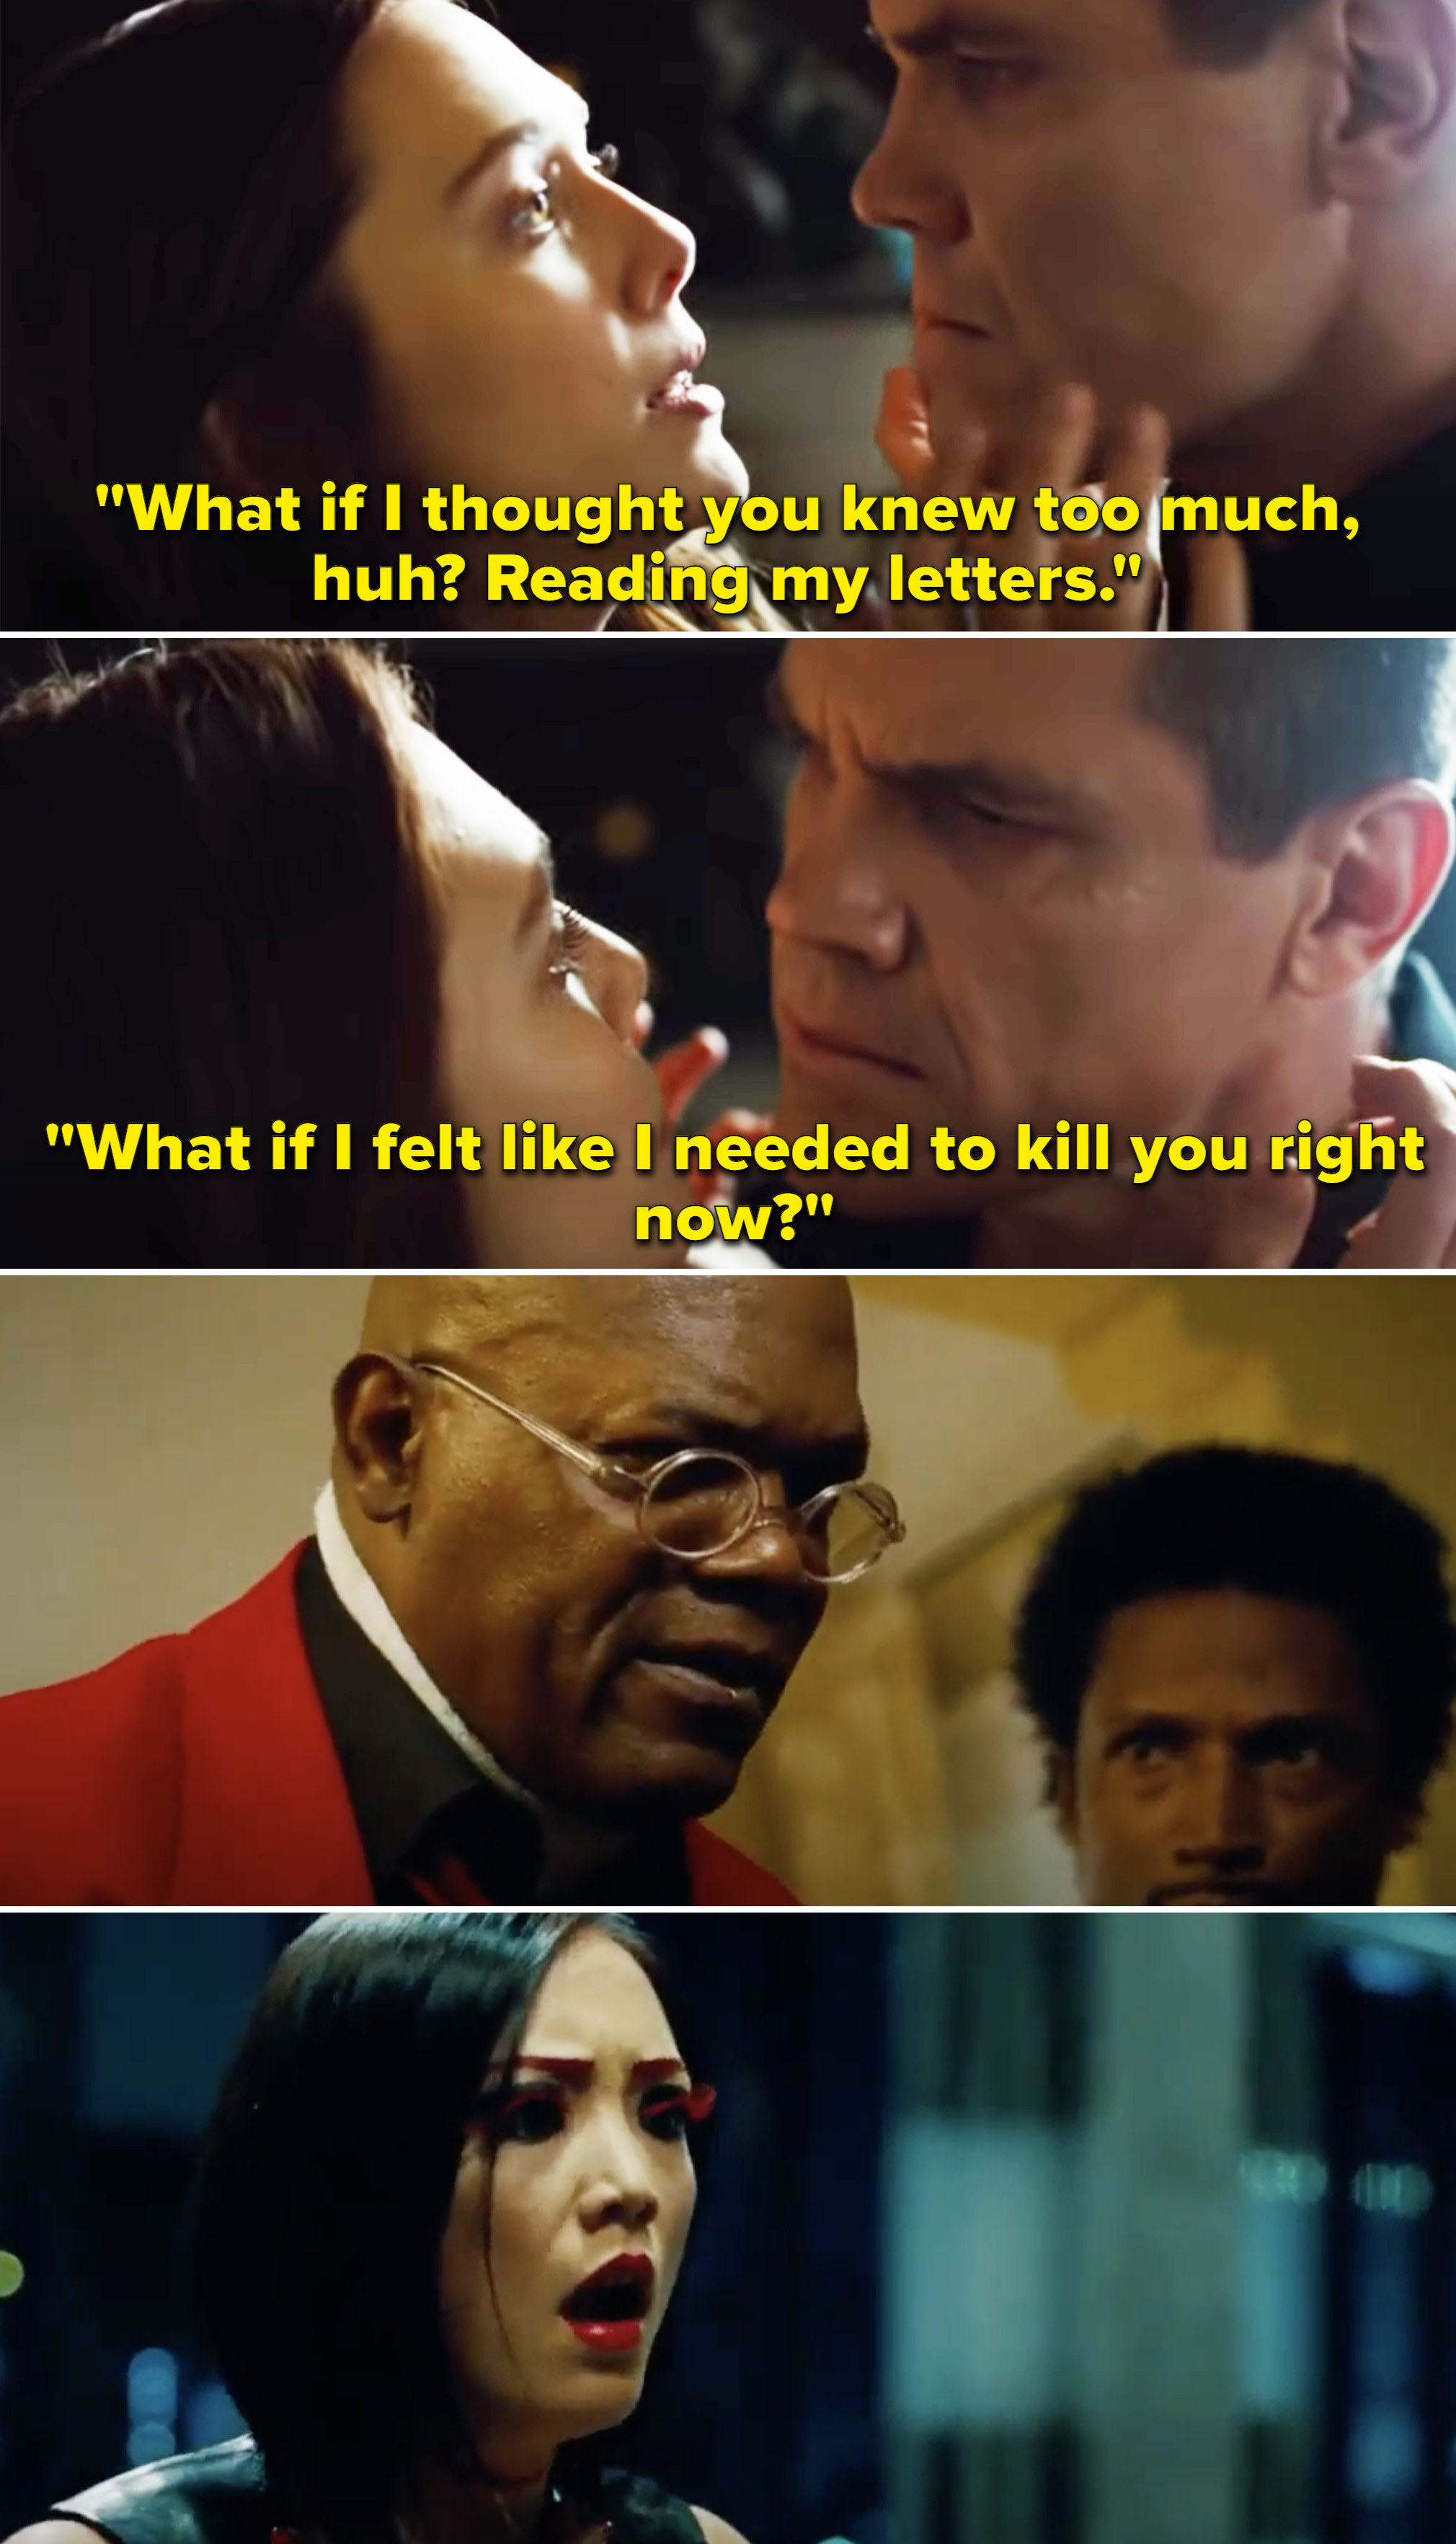 """Joe saying, """"What if I thought you knew too much, huh? Reading my letters. What if I felt like I needed to kill you right now?"""""""